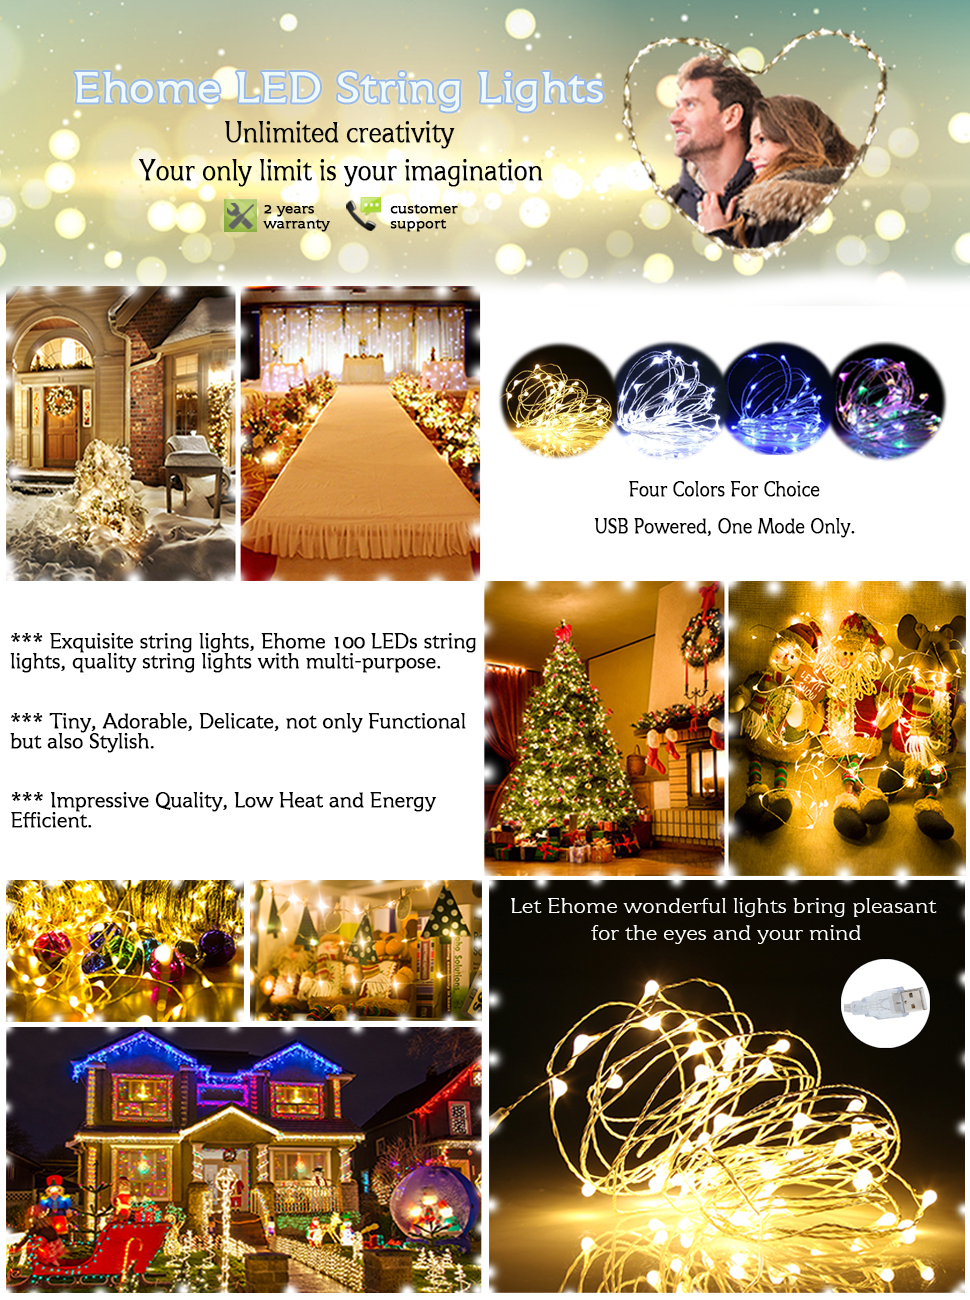 Ehome 100 Led 33ft 10m Starry Fairy String Light Wiring Leds In Series Refers To Electronic Home Which Means One Family China Our Goal Is Easy Life We Want Bring Convenience Your Daily